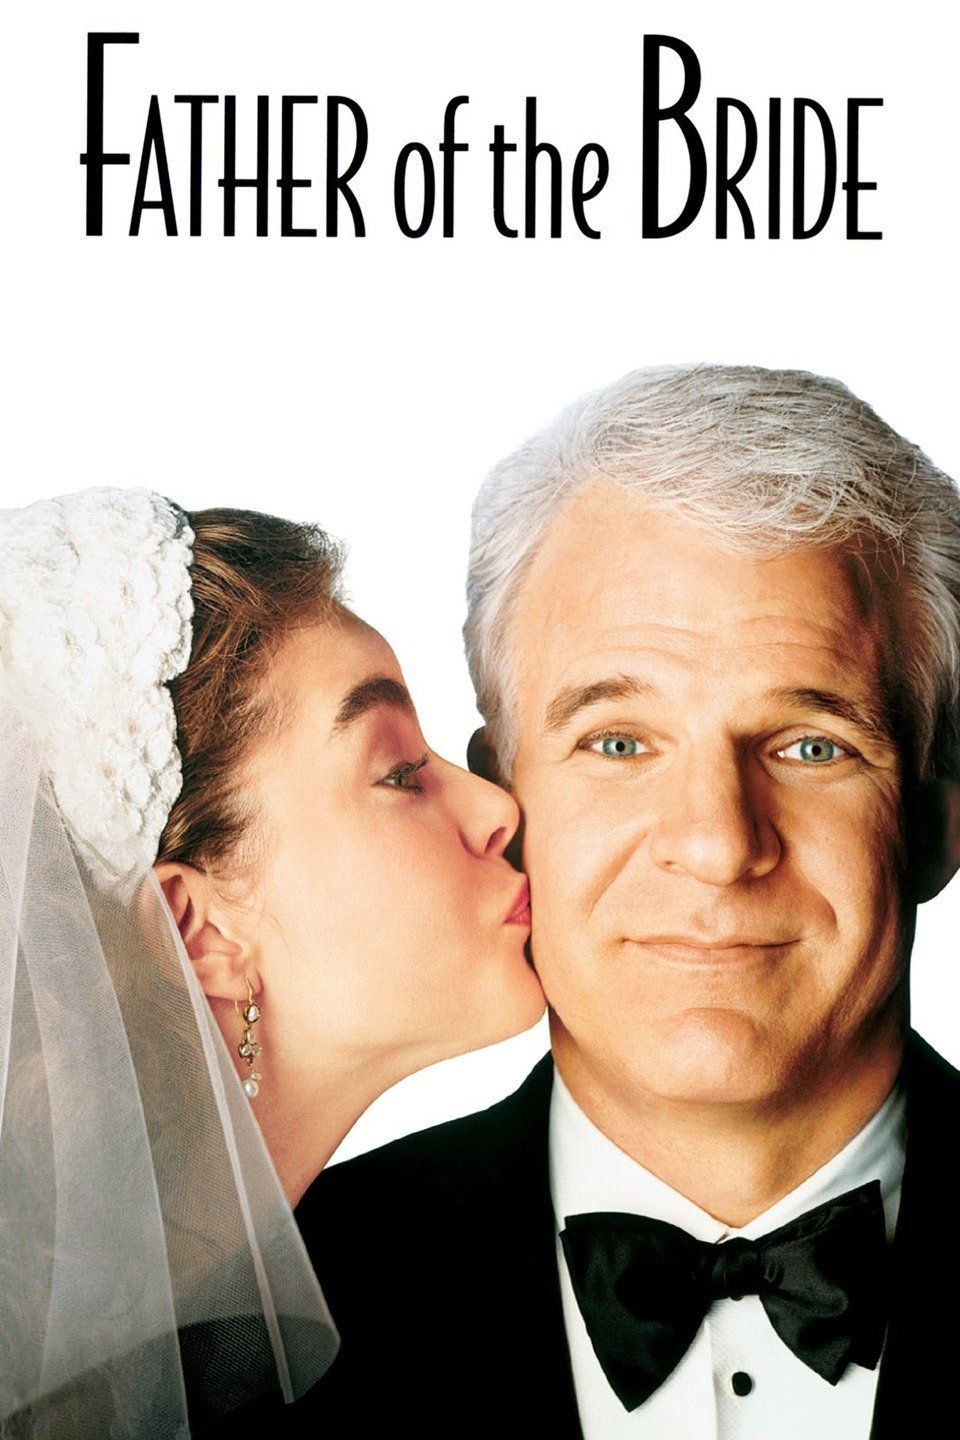 25 WEDDING MOVIES YOU HAVE TO SEE is part of The bride movie, Wedding movies, Father of the bride, Full movies online free, Streaming movies free, Free movies - 25 wedding movies you have to see  From a romantic love story, wedding planning issues, a hilarious bach party, a refresher on what not to do and more!